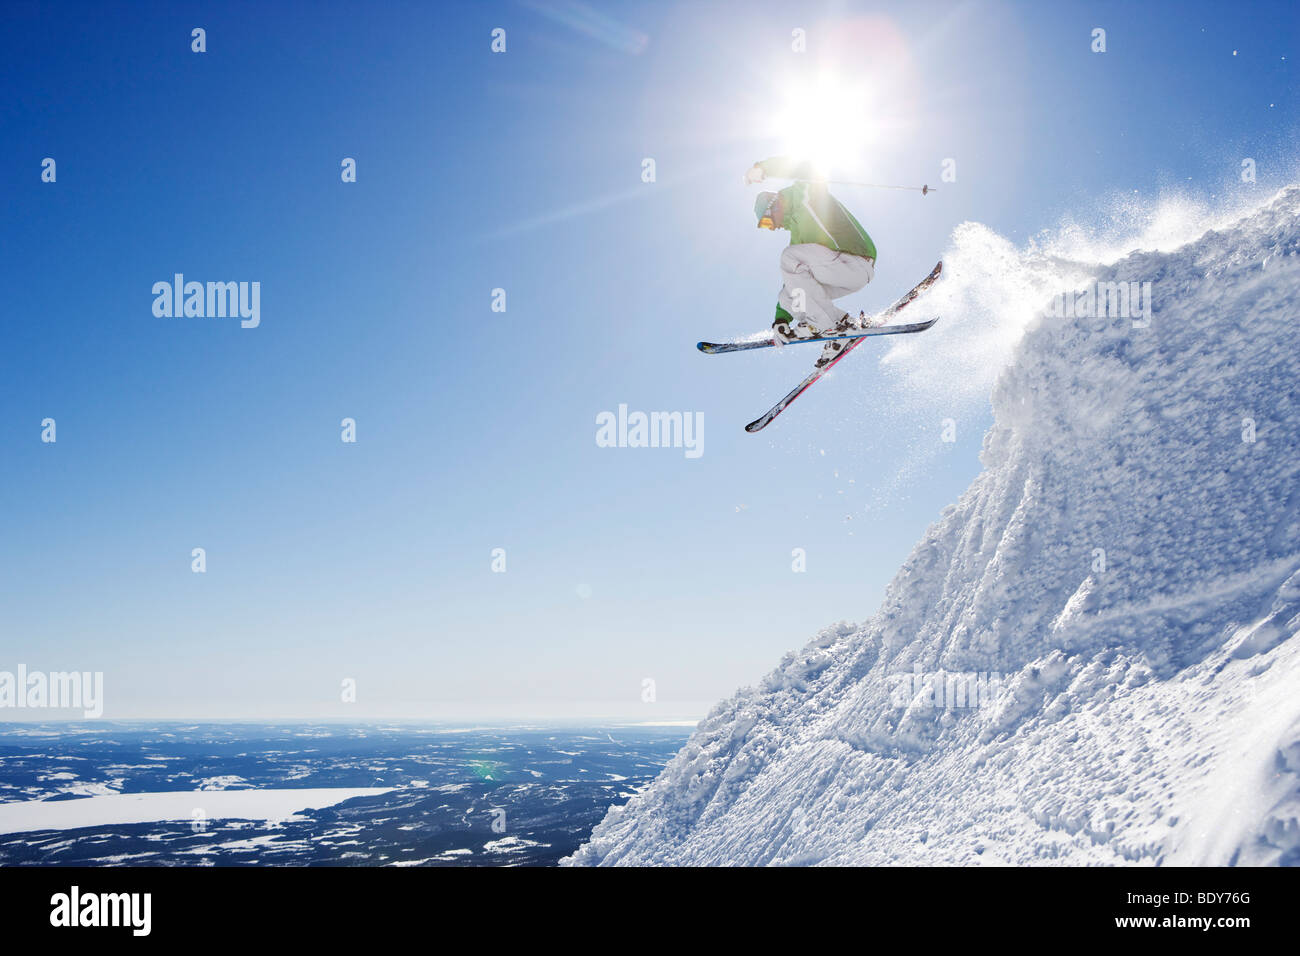 Man in green getting air-time. - Stock Image